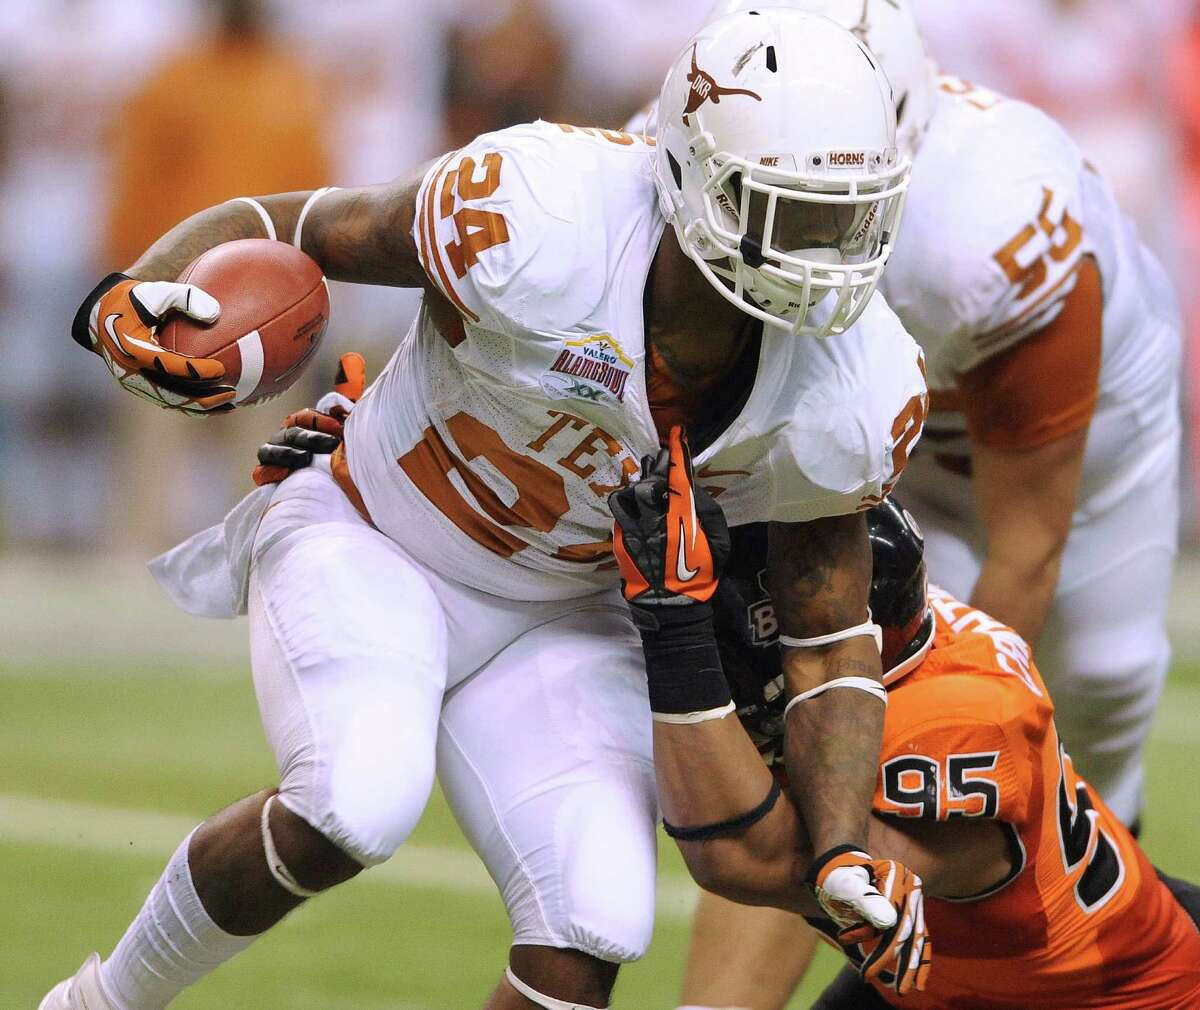 Texas running back Joe Bergeron is dragged down by his shirt collar by Oregon State defender Scott Crichton (95) during Valero Alamo Bowl action in the Alamodome on Saturday, Dec. 29, 2012.